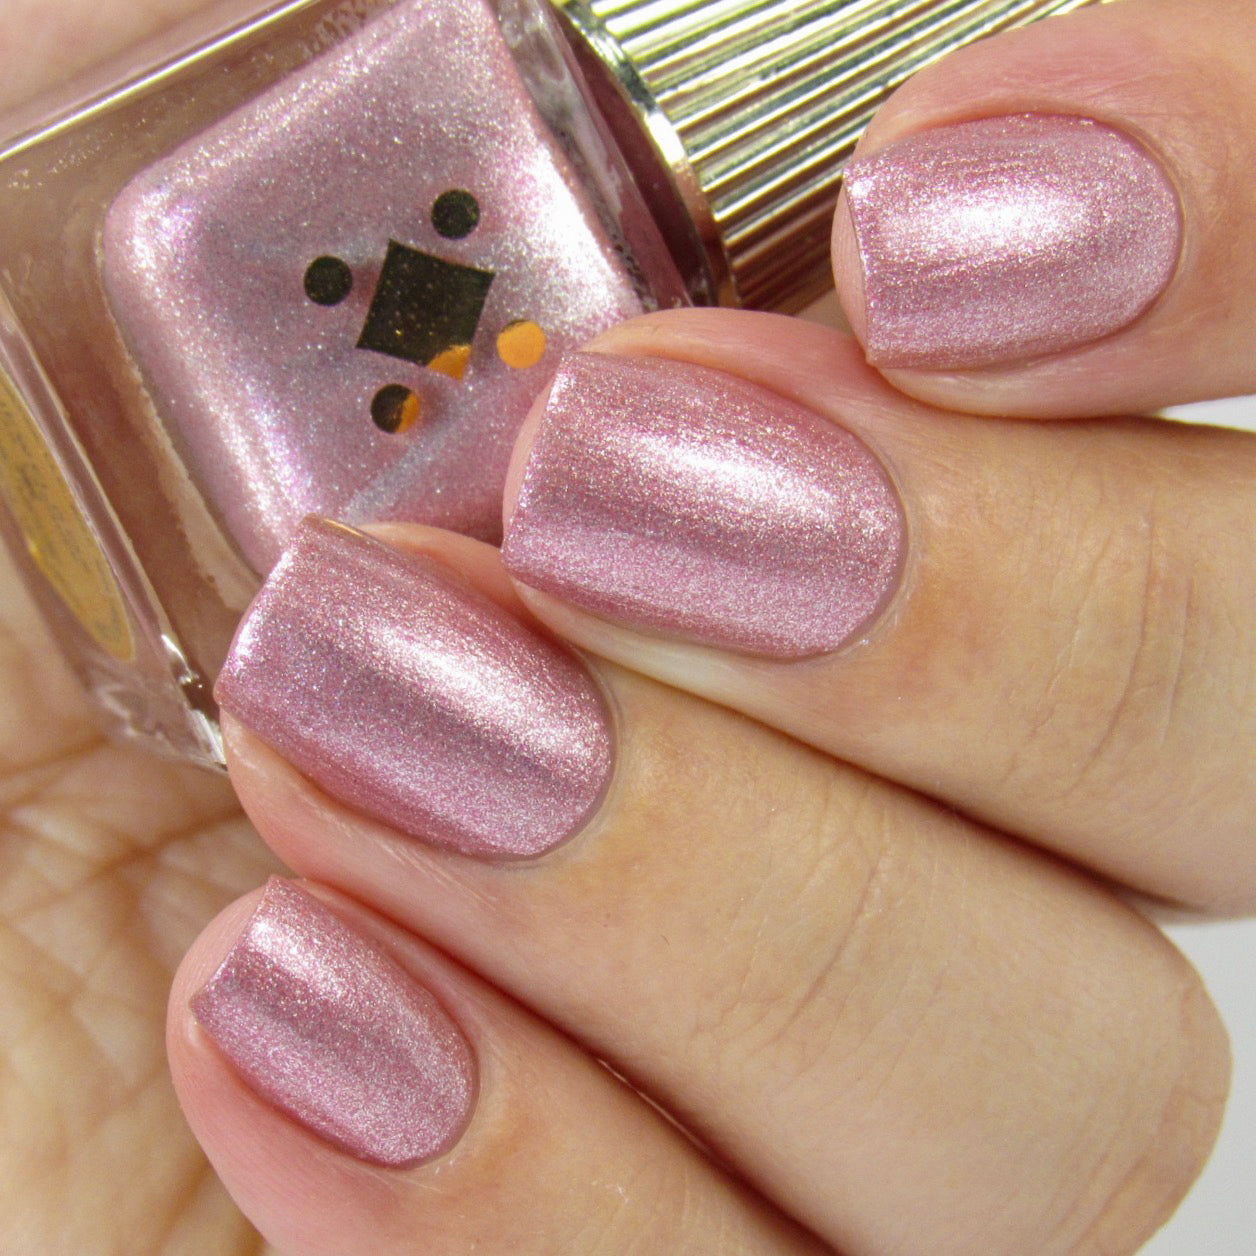 JEWELBOX - pink metallic nail lacquer by Deco Miami